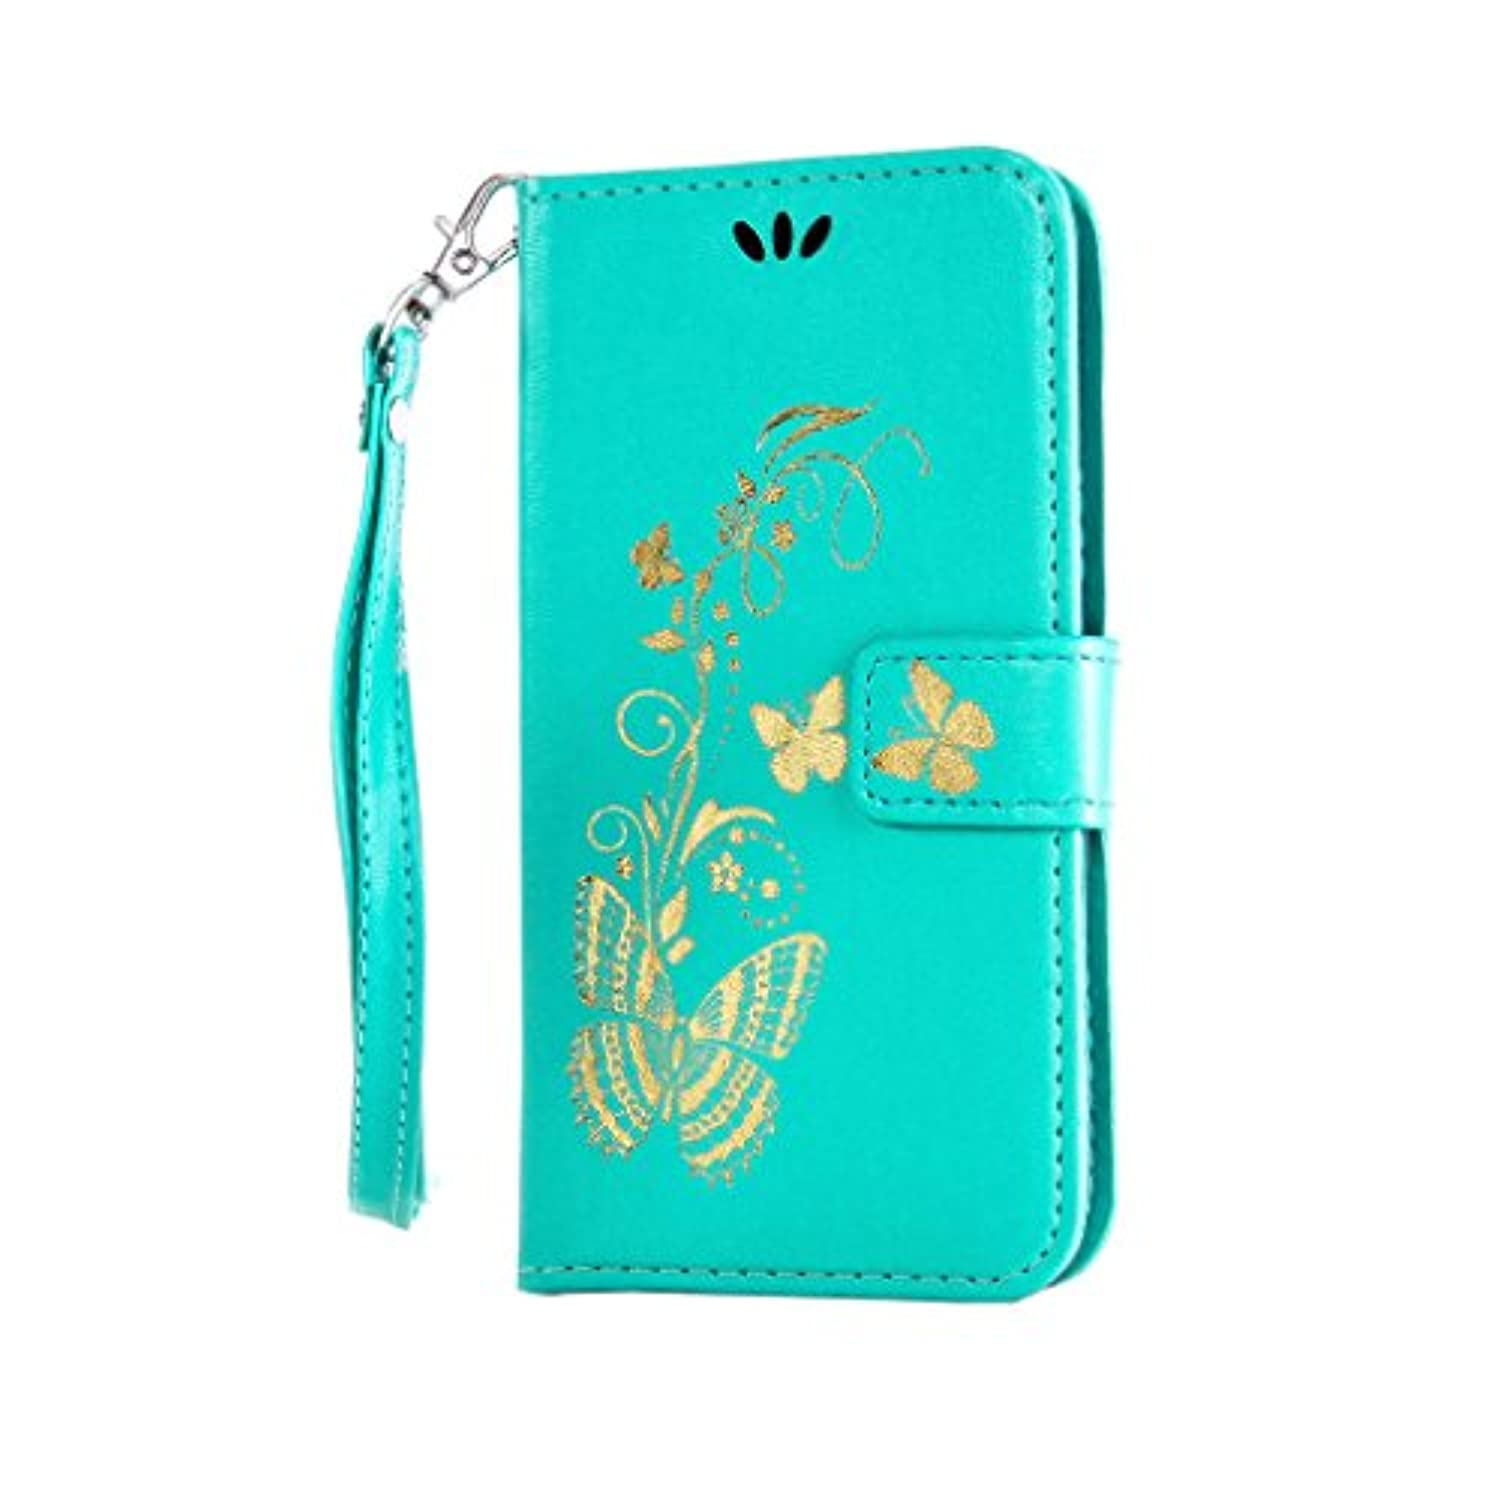 """iPhone 6 6S Plus Case [With Free Tempered glass screen protector],W-Pigcase High Quality PU Leather With Printed Gold Butterfly Pattern With Magnetic Book Wallet Protective Cover Case For iPhone 6 Plus/6S Plus 5.5"""" inch -black"""